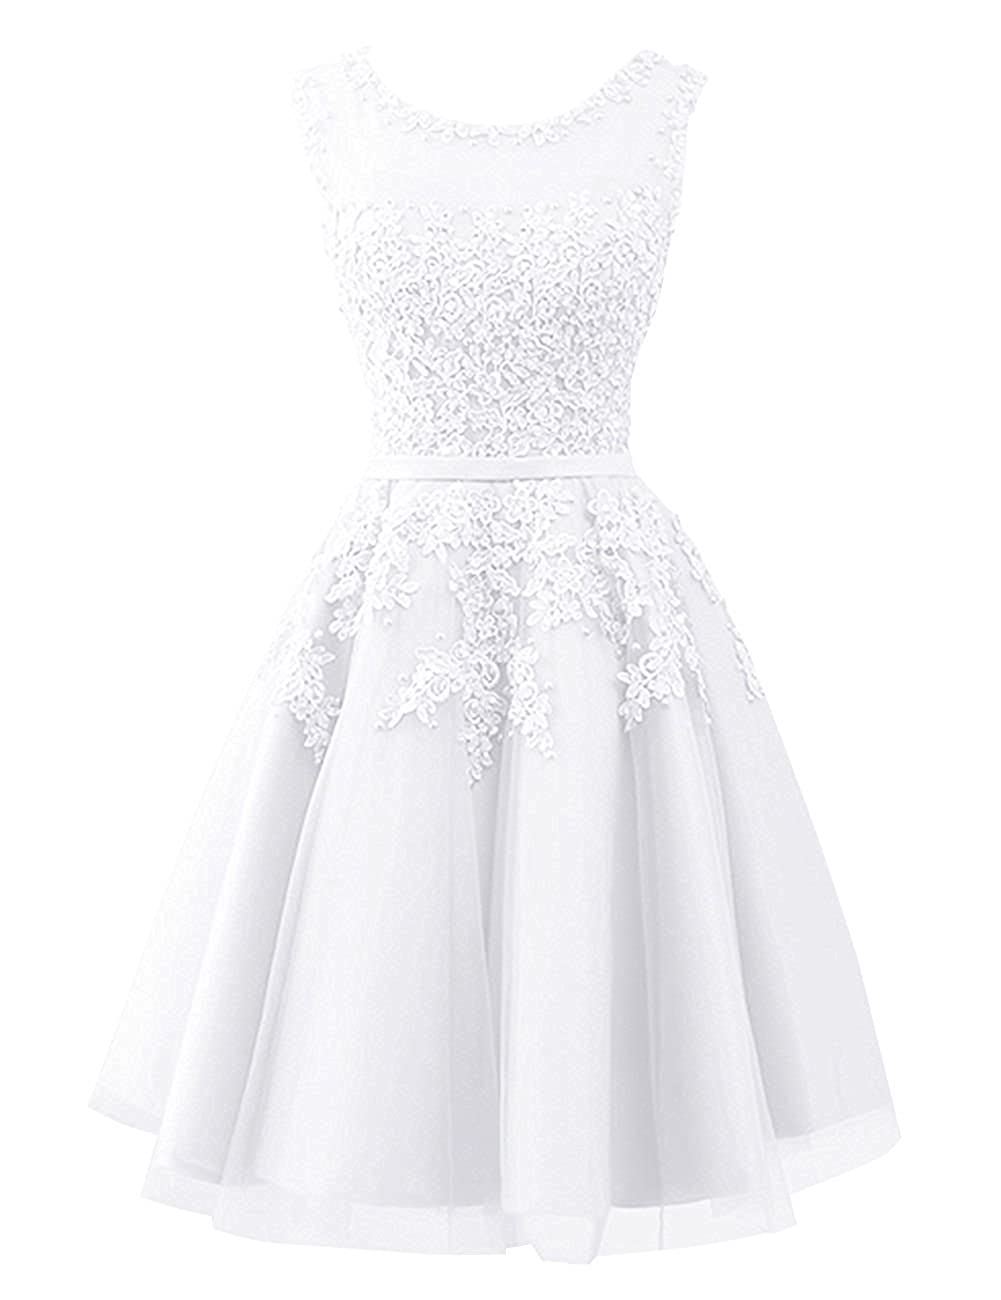 White Cdress Tulle Short Junior Homecoming Dresses Prom Evening Dress Party Formal Gowns Lace Appliques